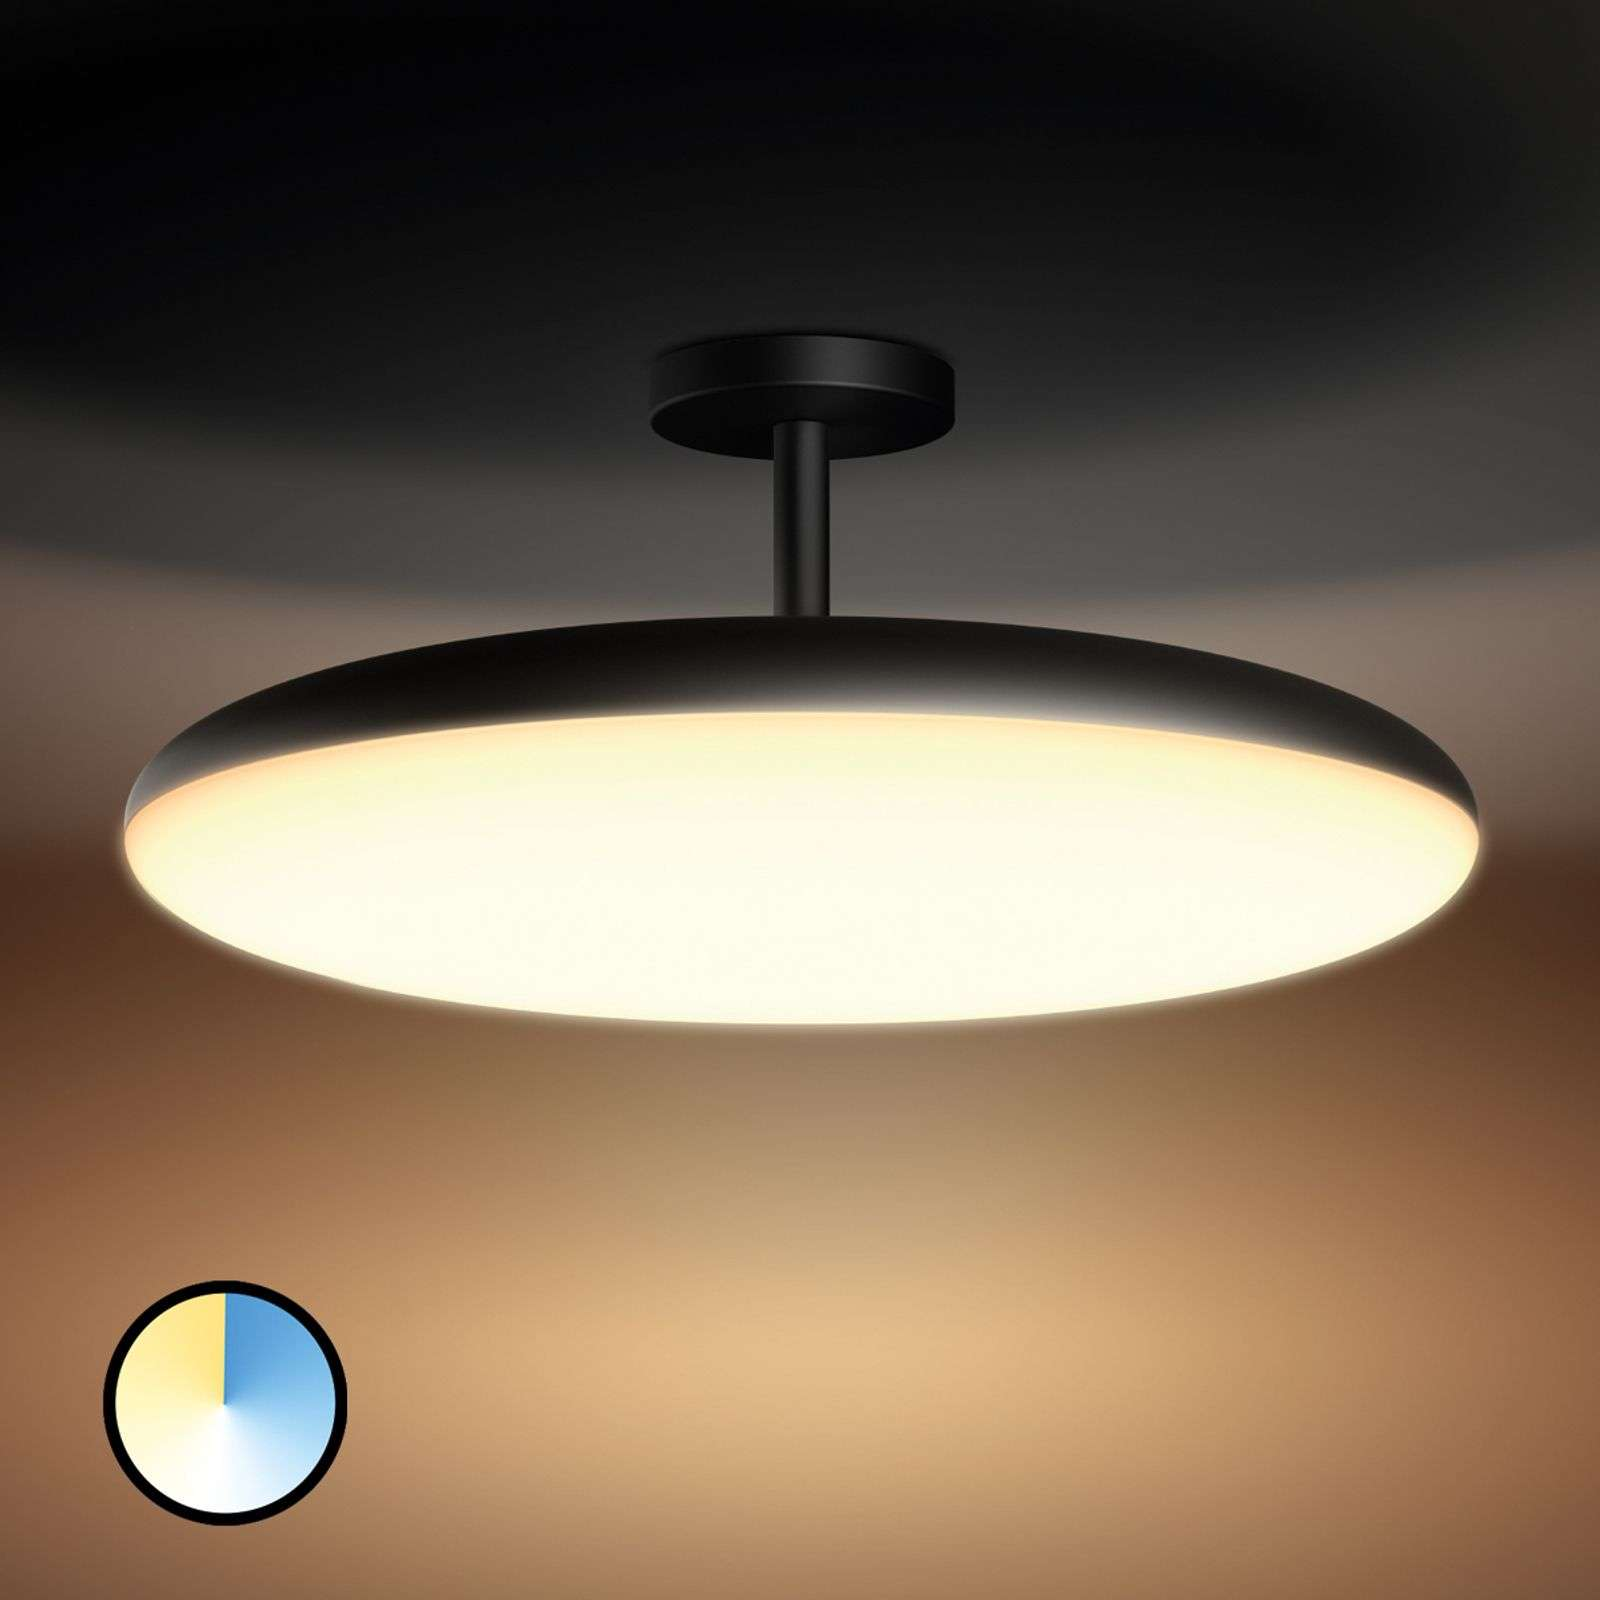 Plafoniera LED Cher Philips Hue gestibile